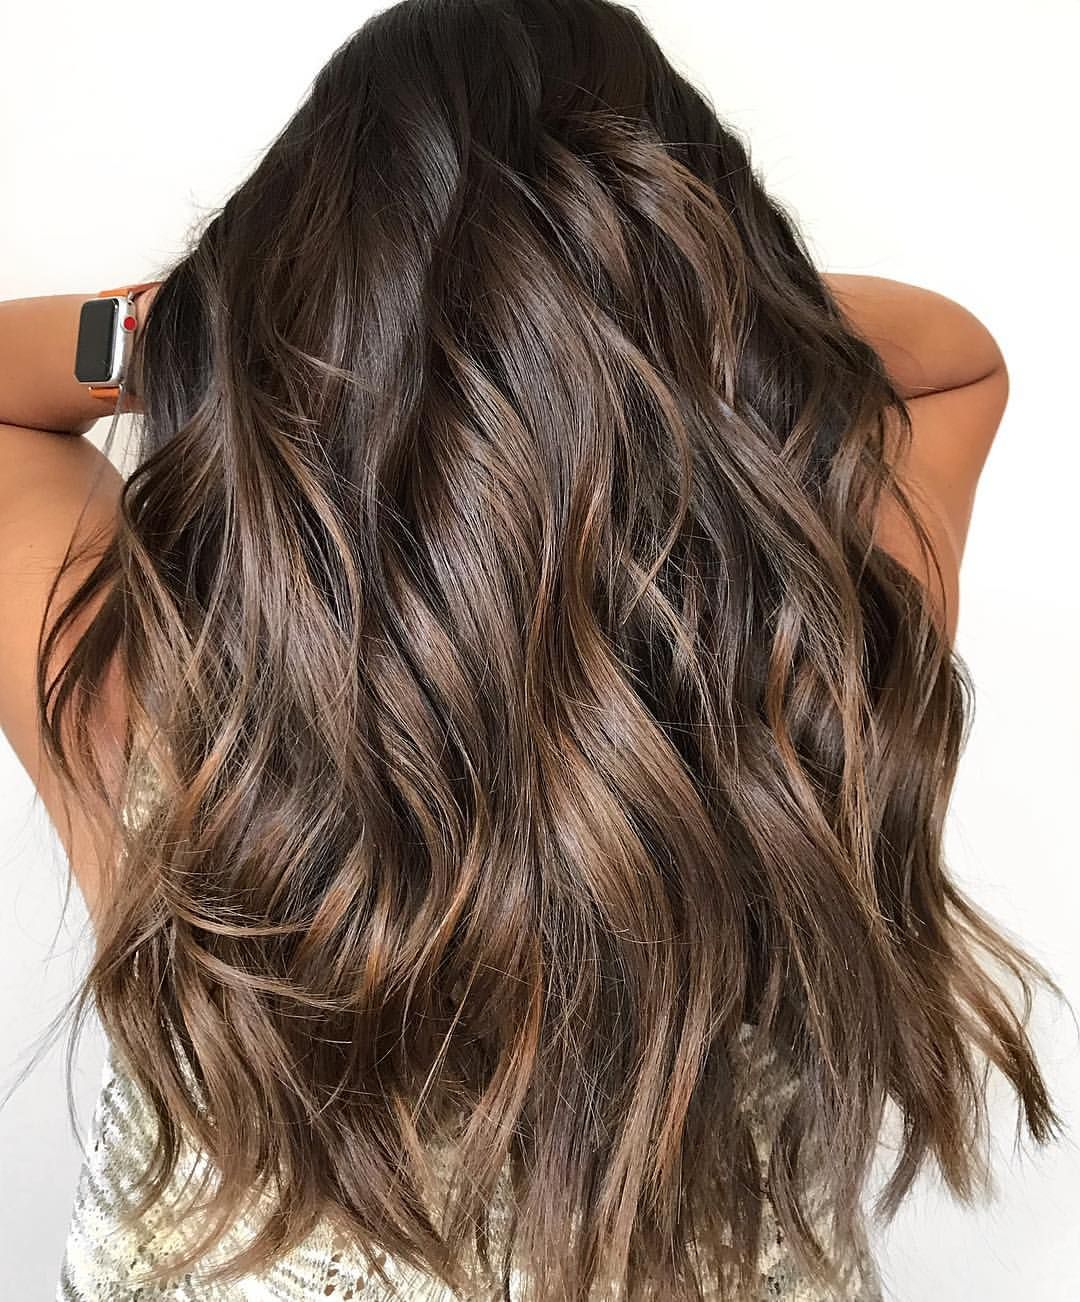 "• R A Q U E L N I C O L E • on Instagram: ""First day of FALL 🍂 Haircut by @hairbyalan • • • #brunettebalayage #balayage #behindthechair #modernsalon #americansalon #bestofbalayage…"""